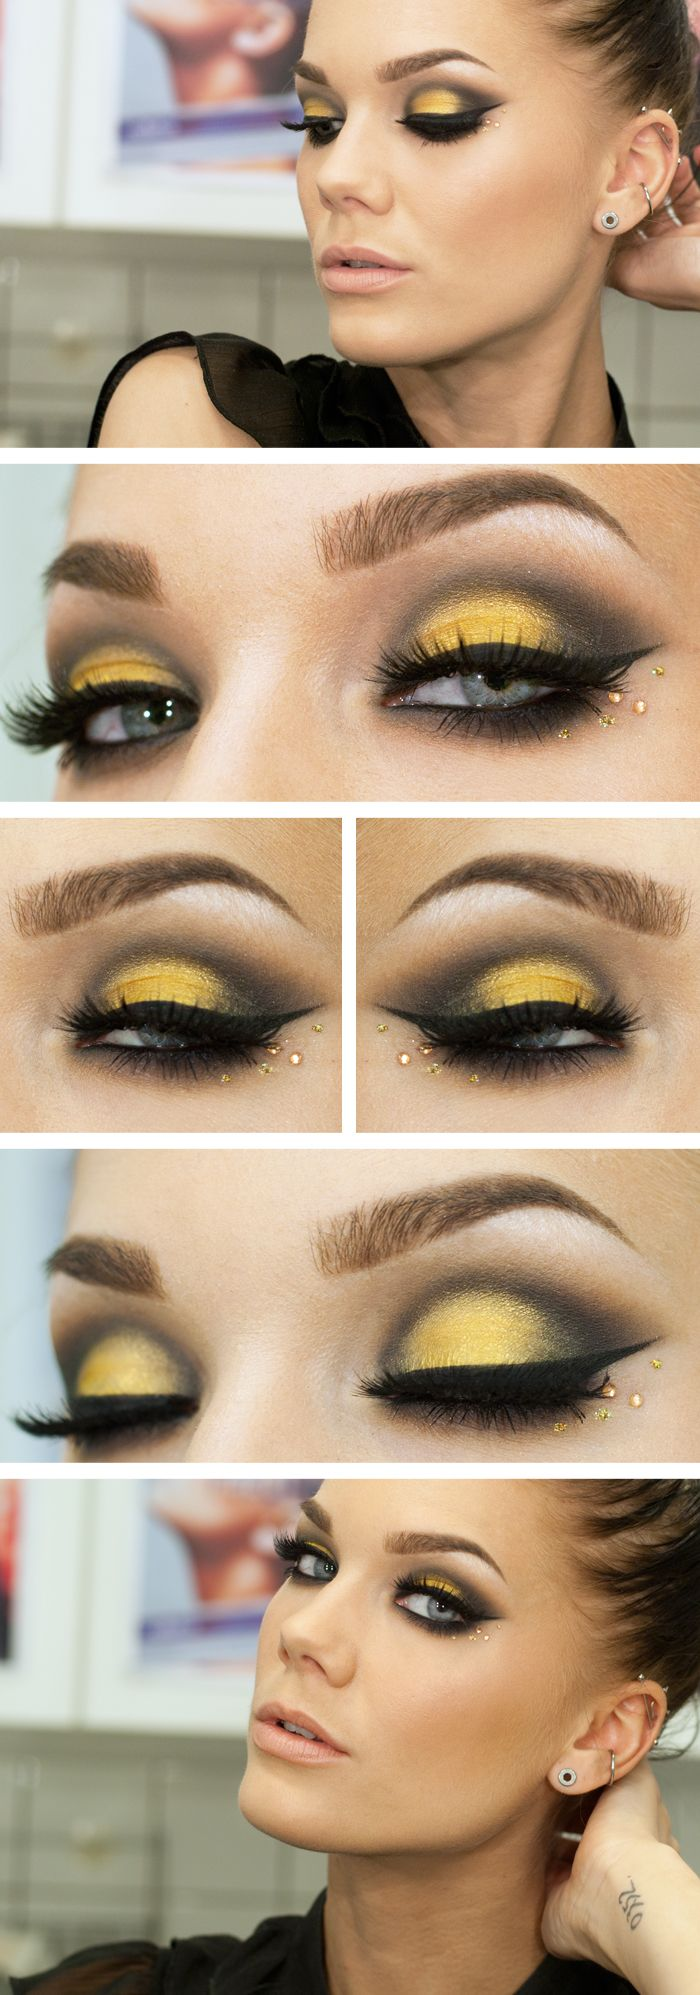 11 everyday makeup tutorials and ideas for women pretty designs faddish yellow eye makeup tutorial baditri Images